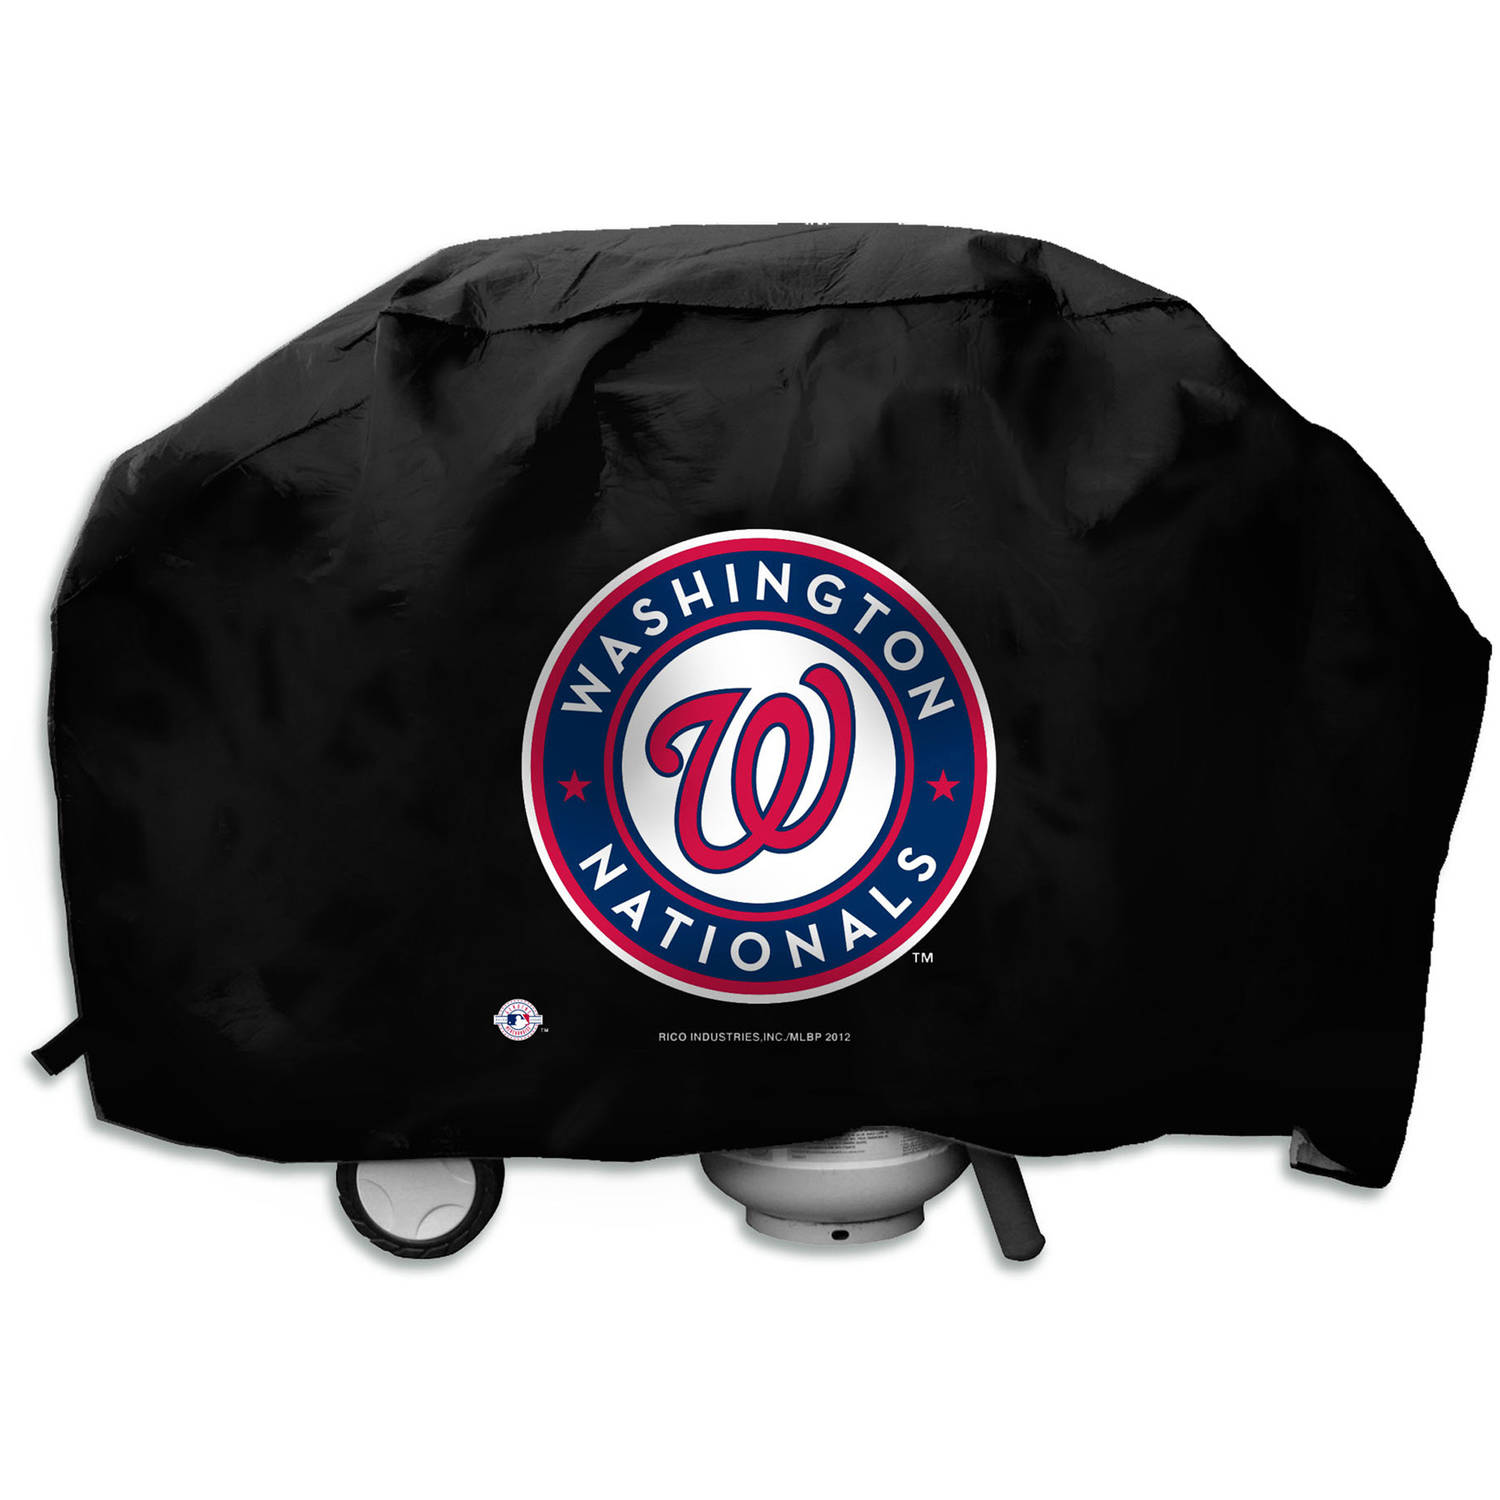 MLB Rico Industries Deluxe Grill Cover, Washington Nationals